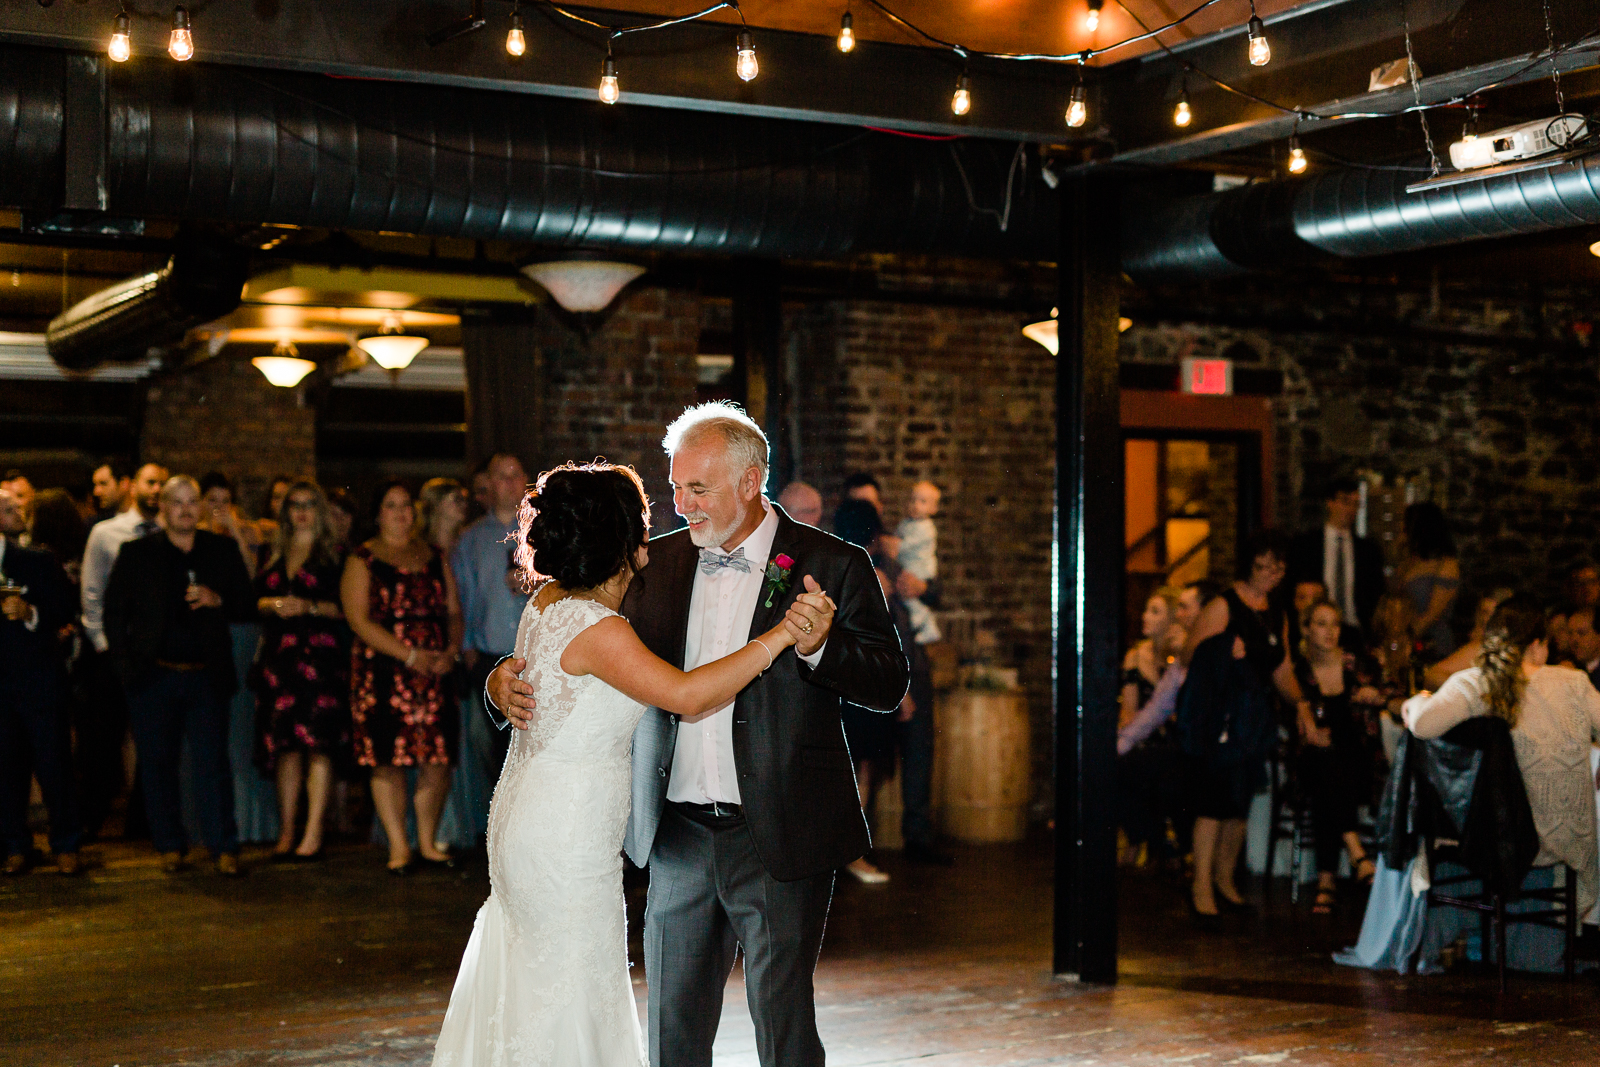 0123st-johns-wedding-photographer-caitlin-adam-yellowbelly.jpg